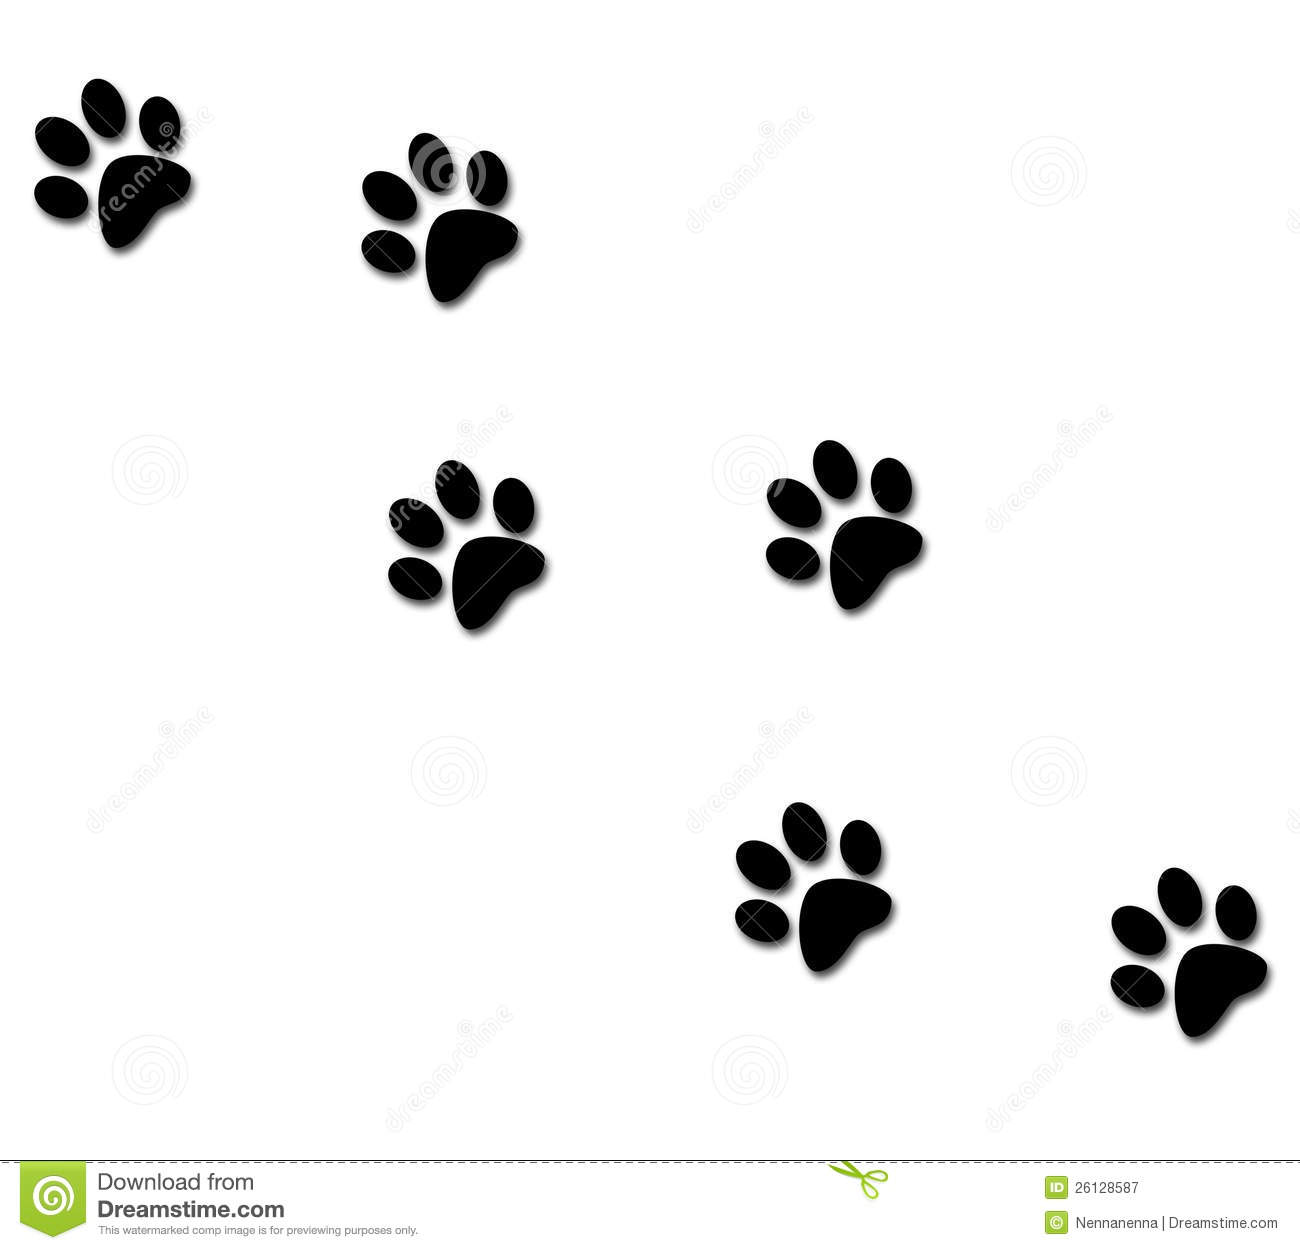 cat-paw-clip-art-clipart-panda-free-clipart-images-gBMms8-clipart.jpg